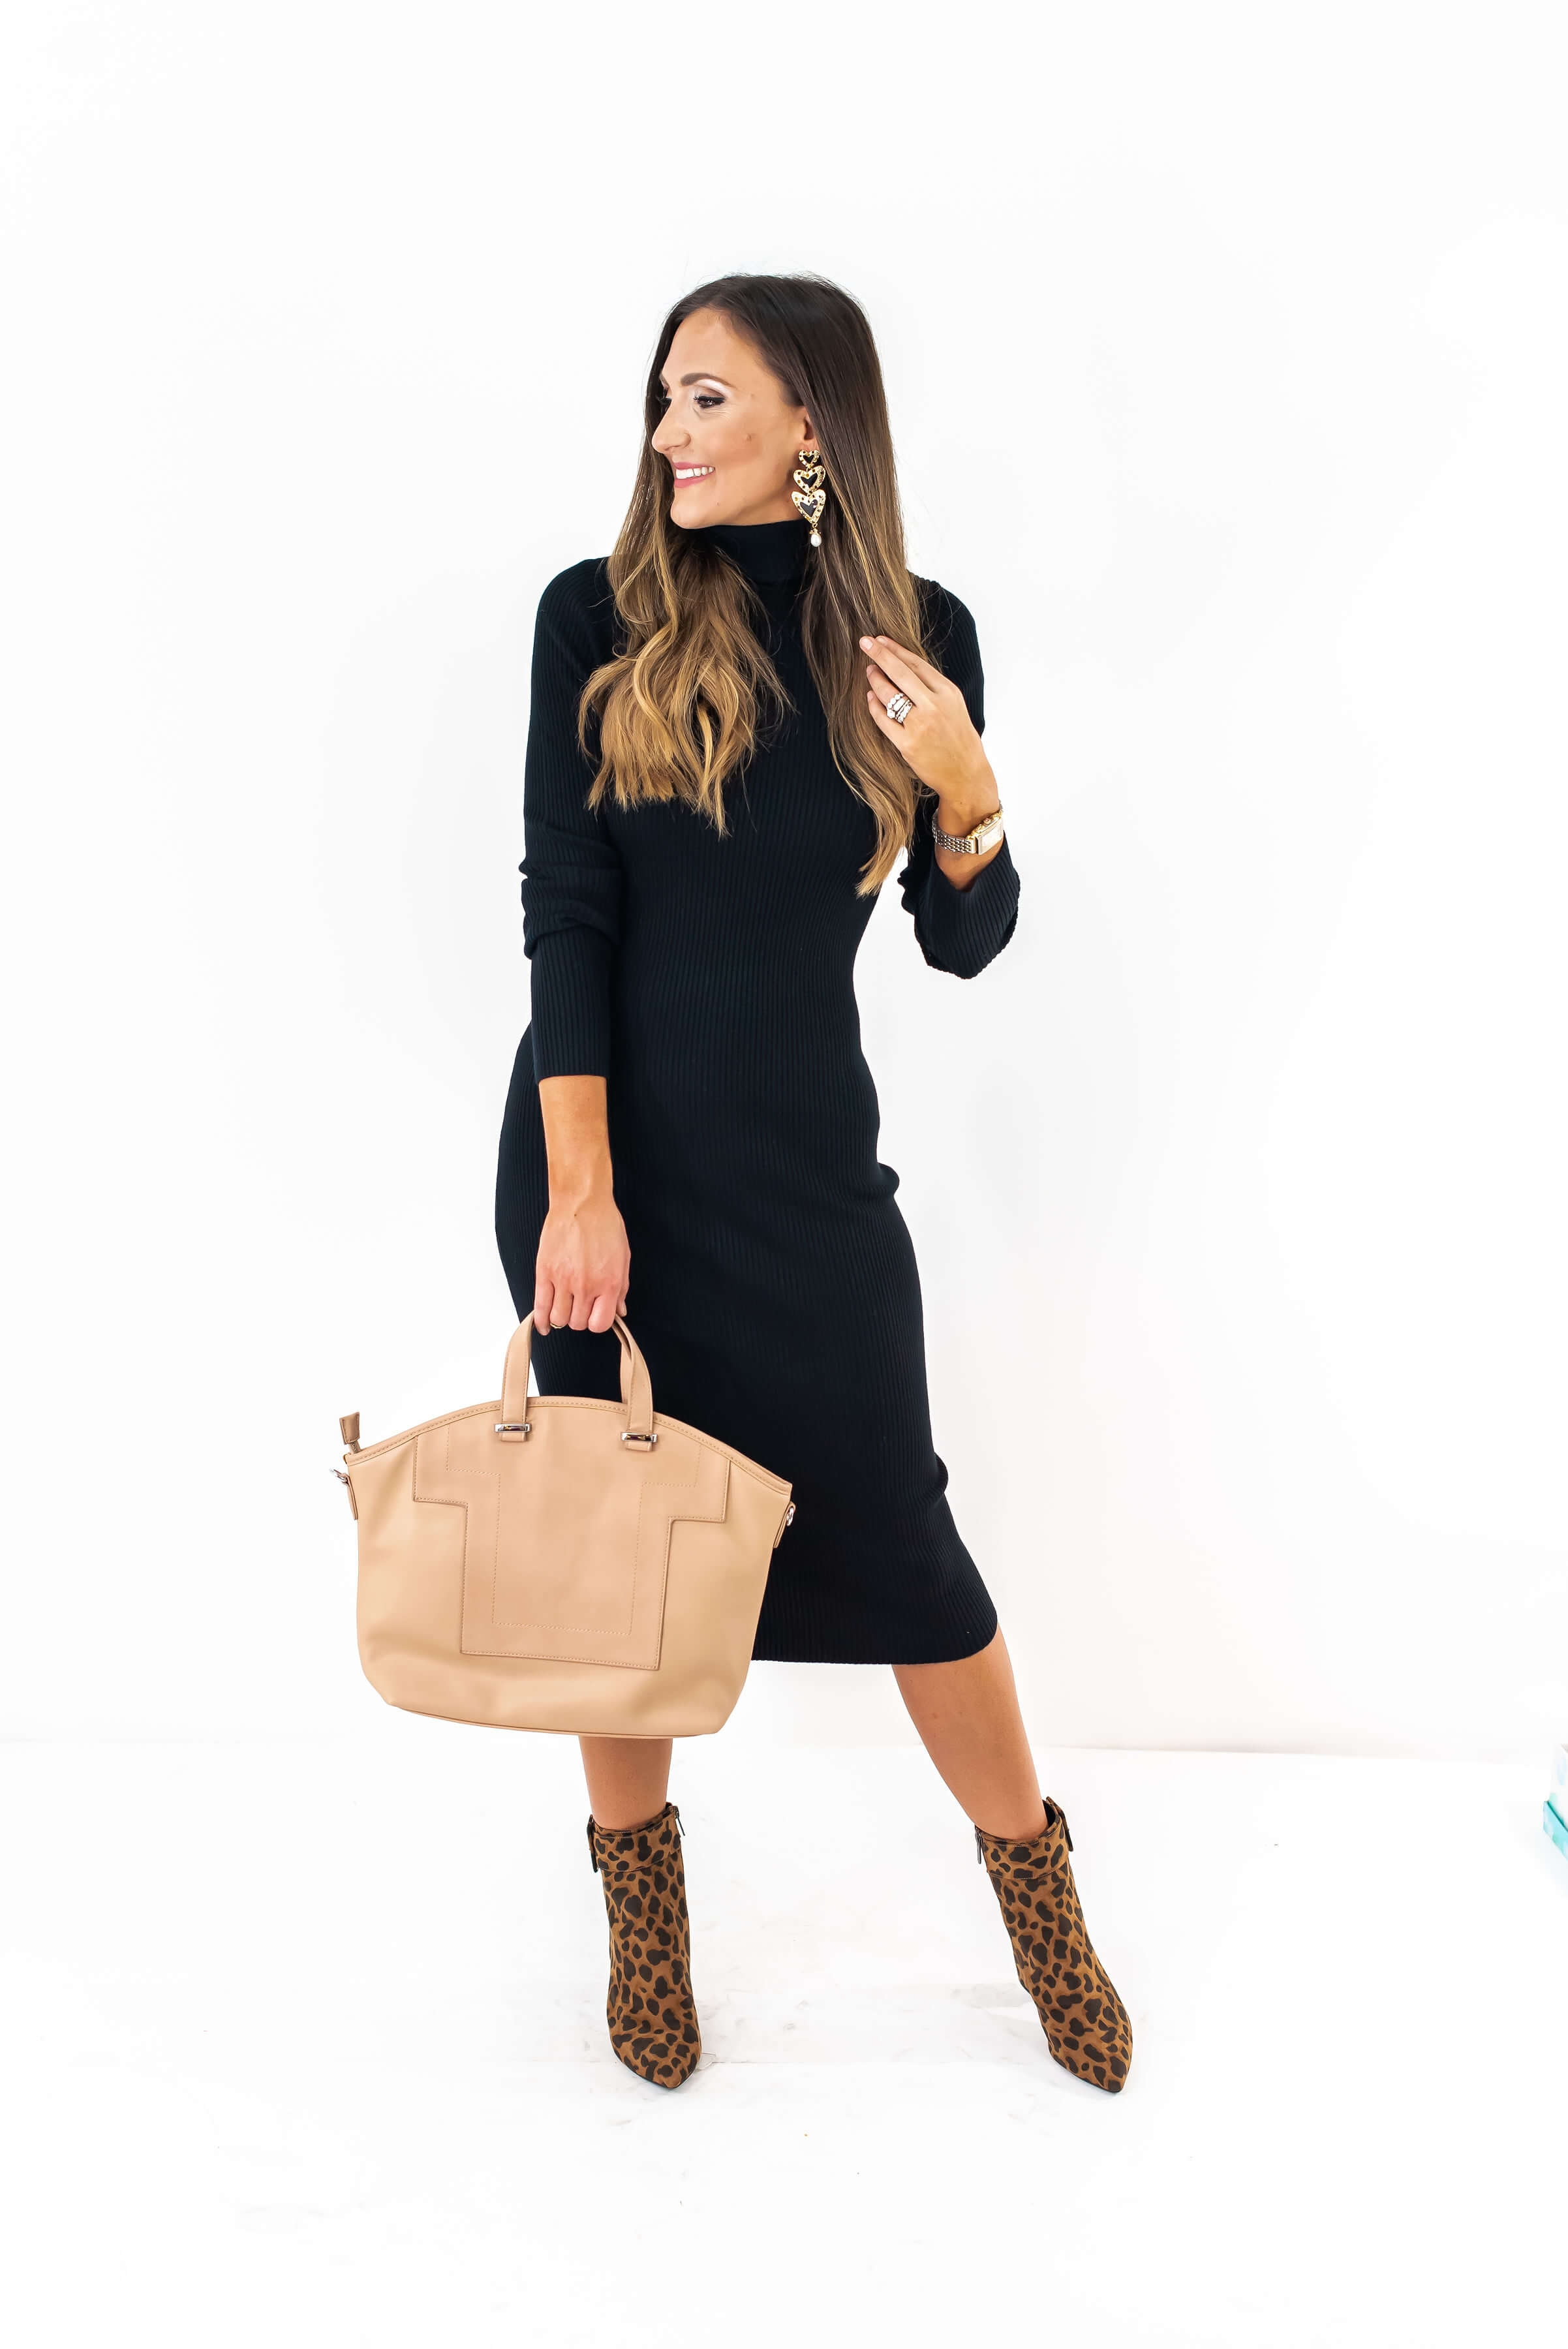 How to style Leopard Booties | Black Sweater Dress | | Last Call | Style Your Senses